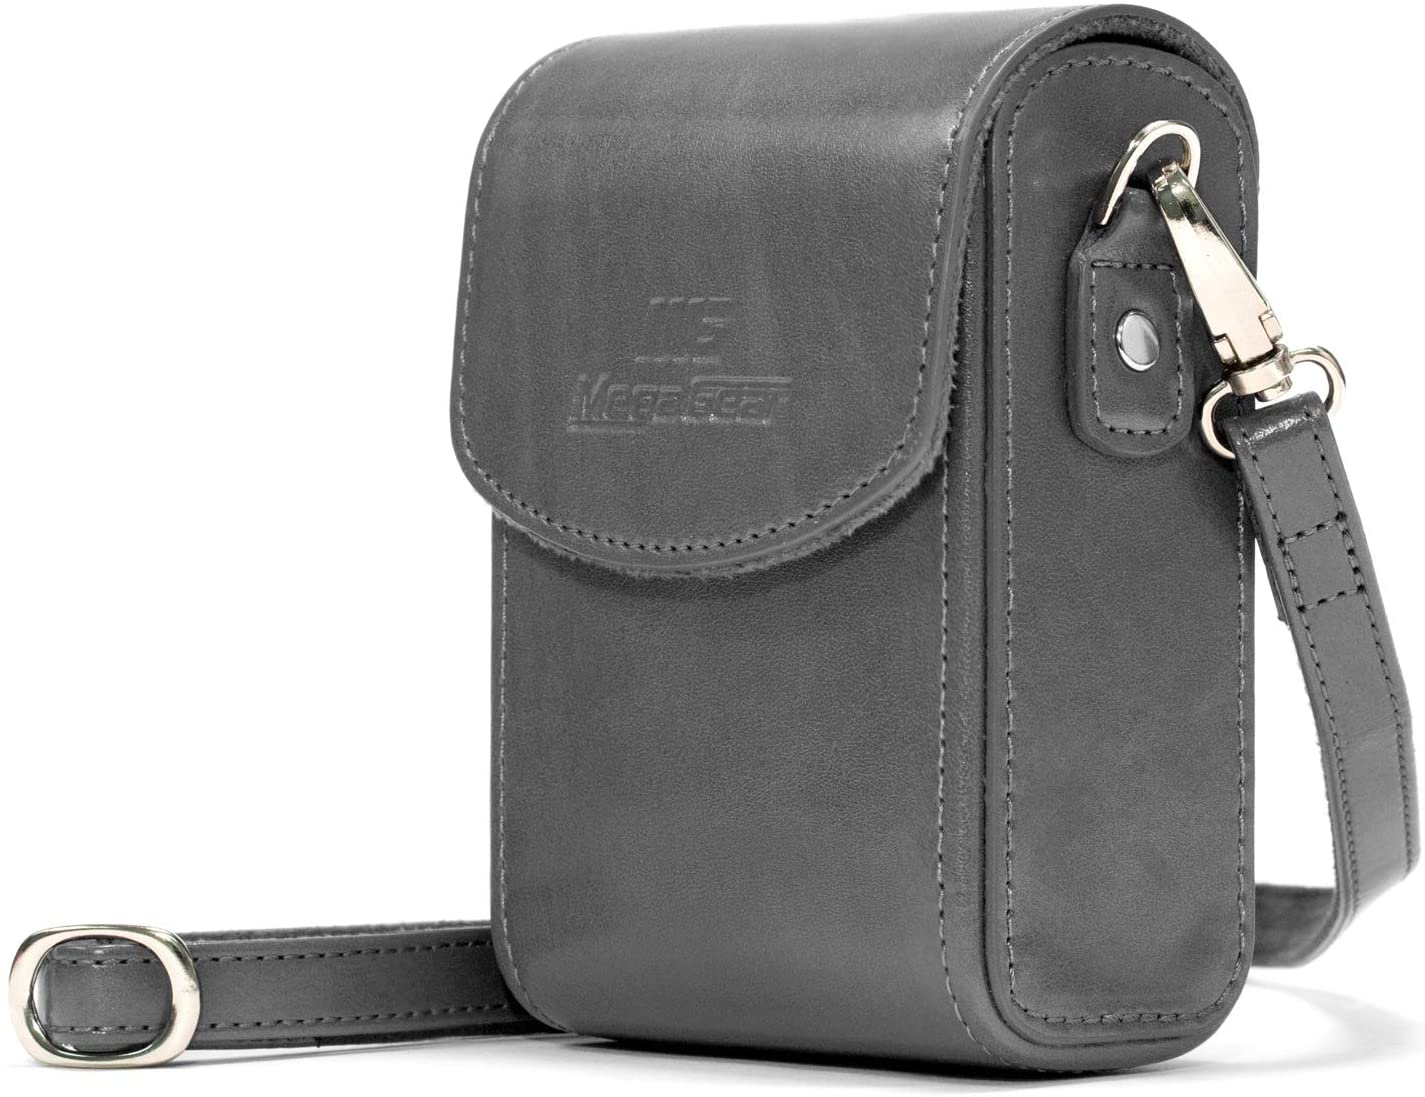 MegaGear Leather Camera Case with Strap Compatible with Nikon Coolpix A1000, A900